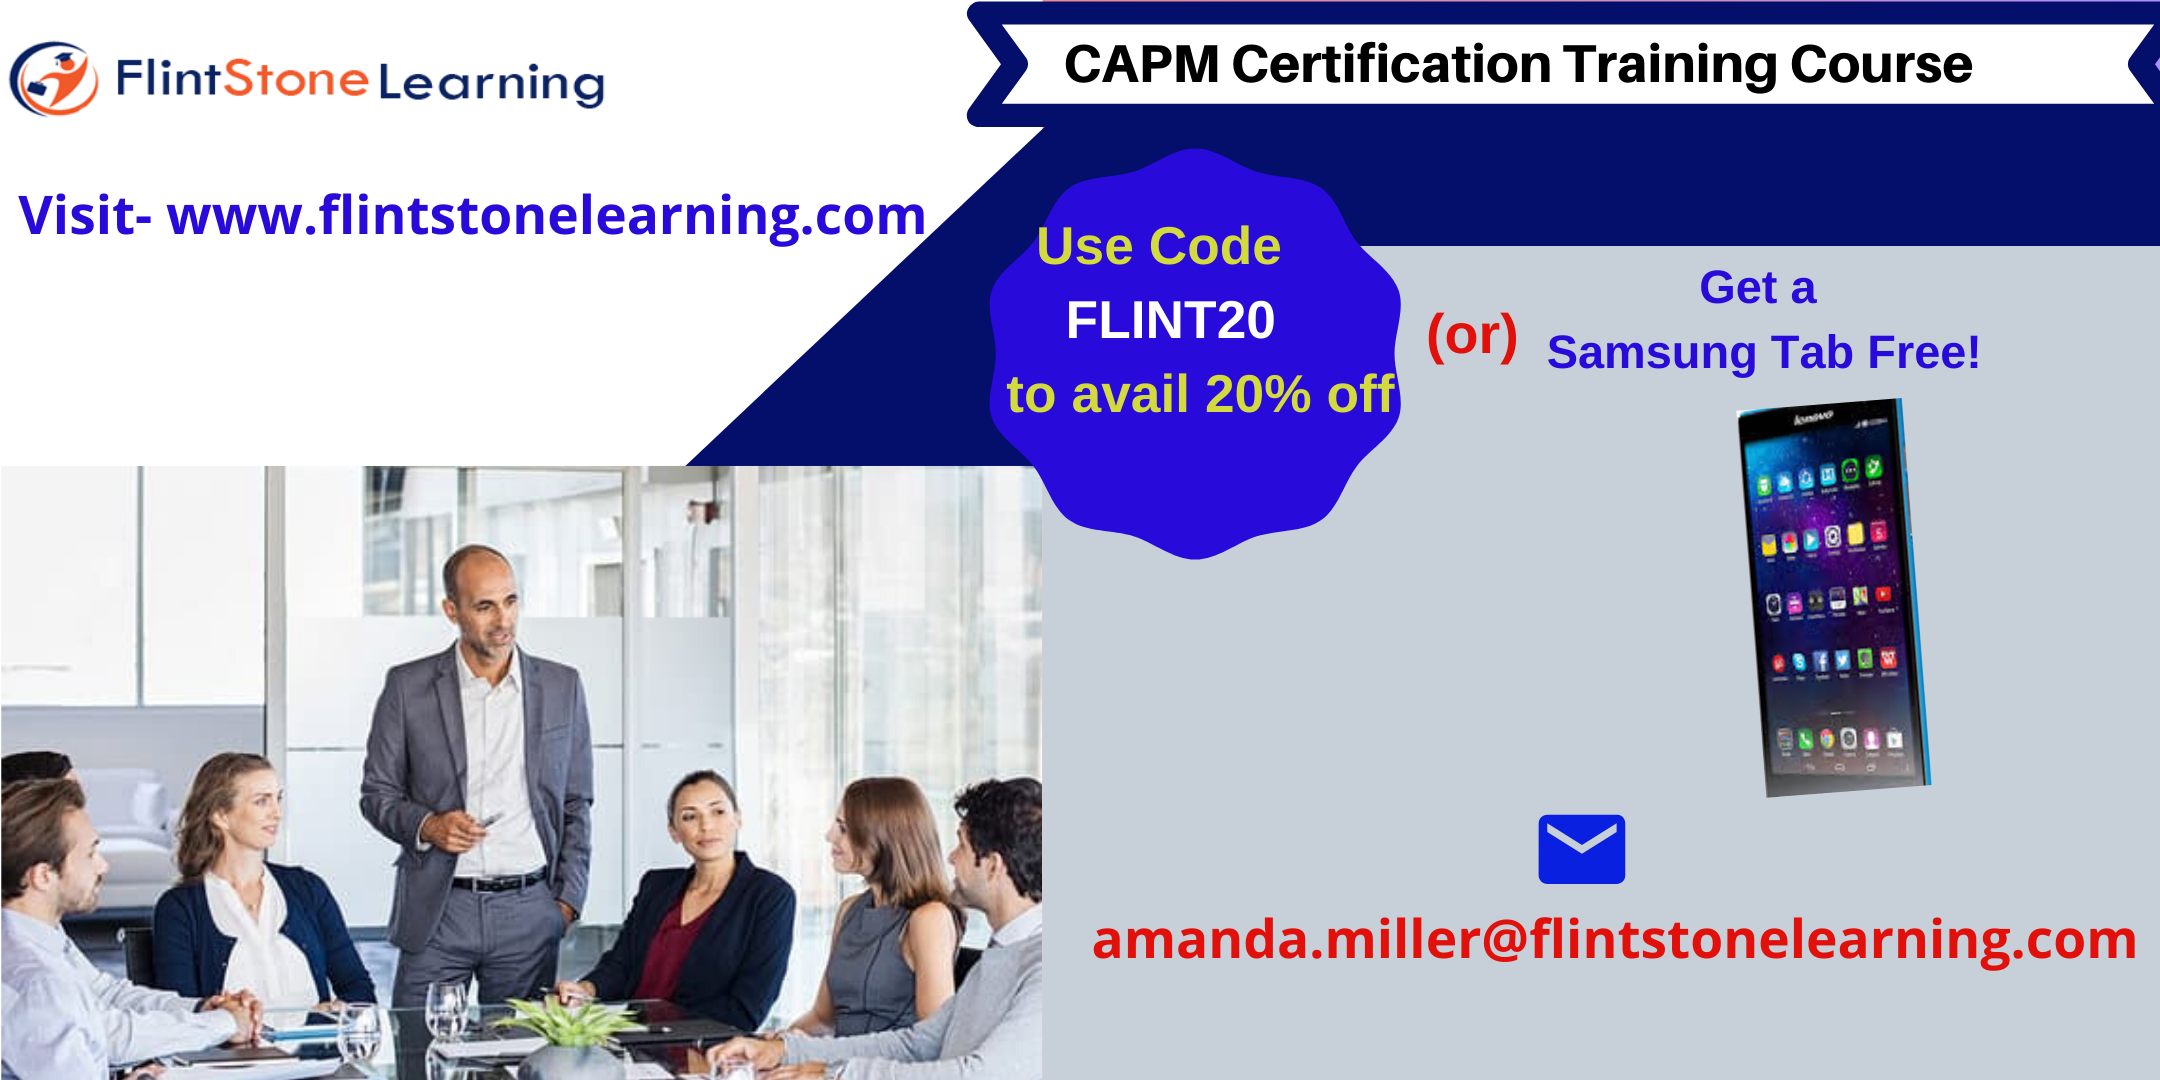 CAPM Certification Training Course in Pasadena, TX